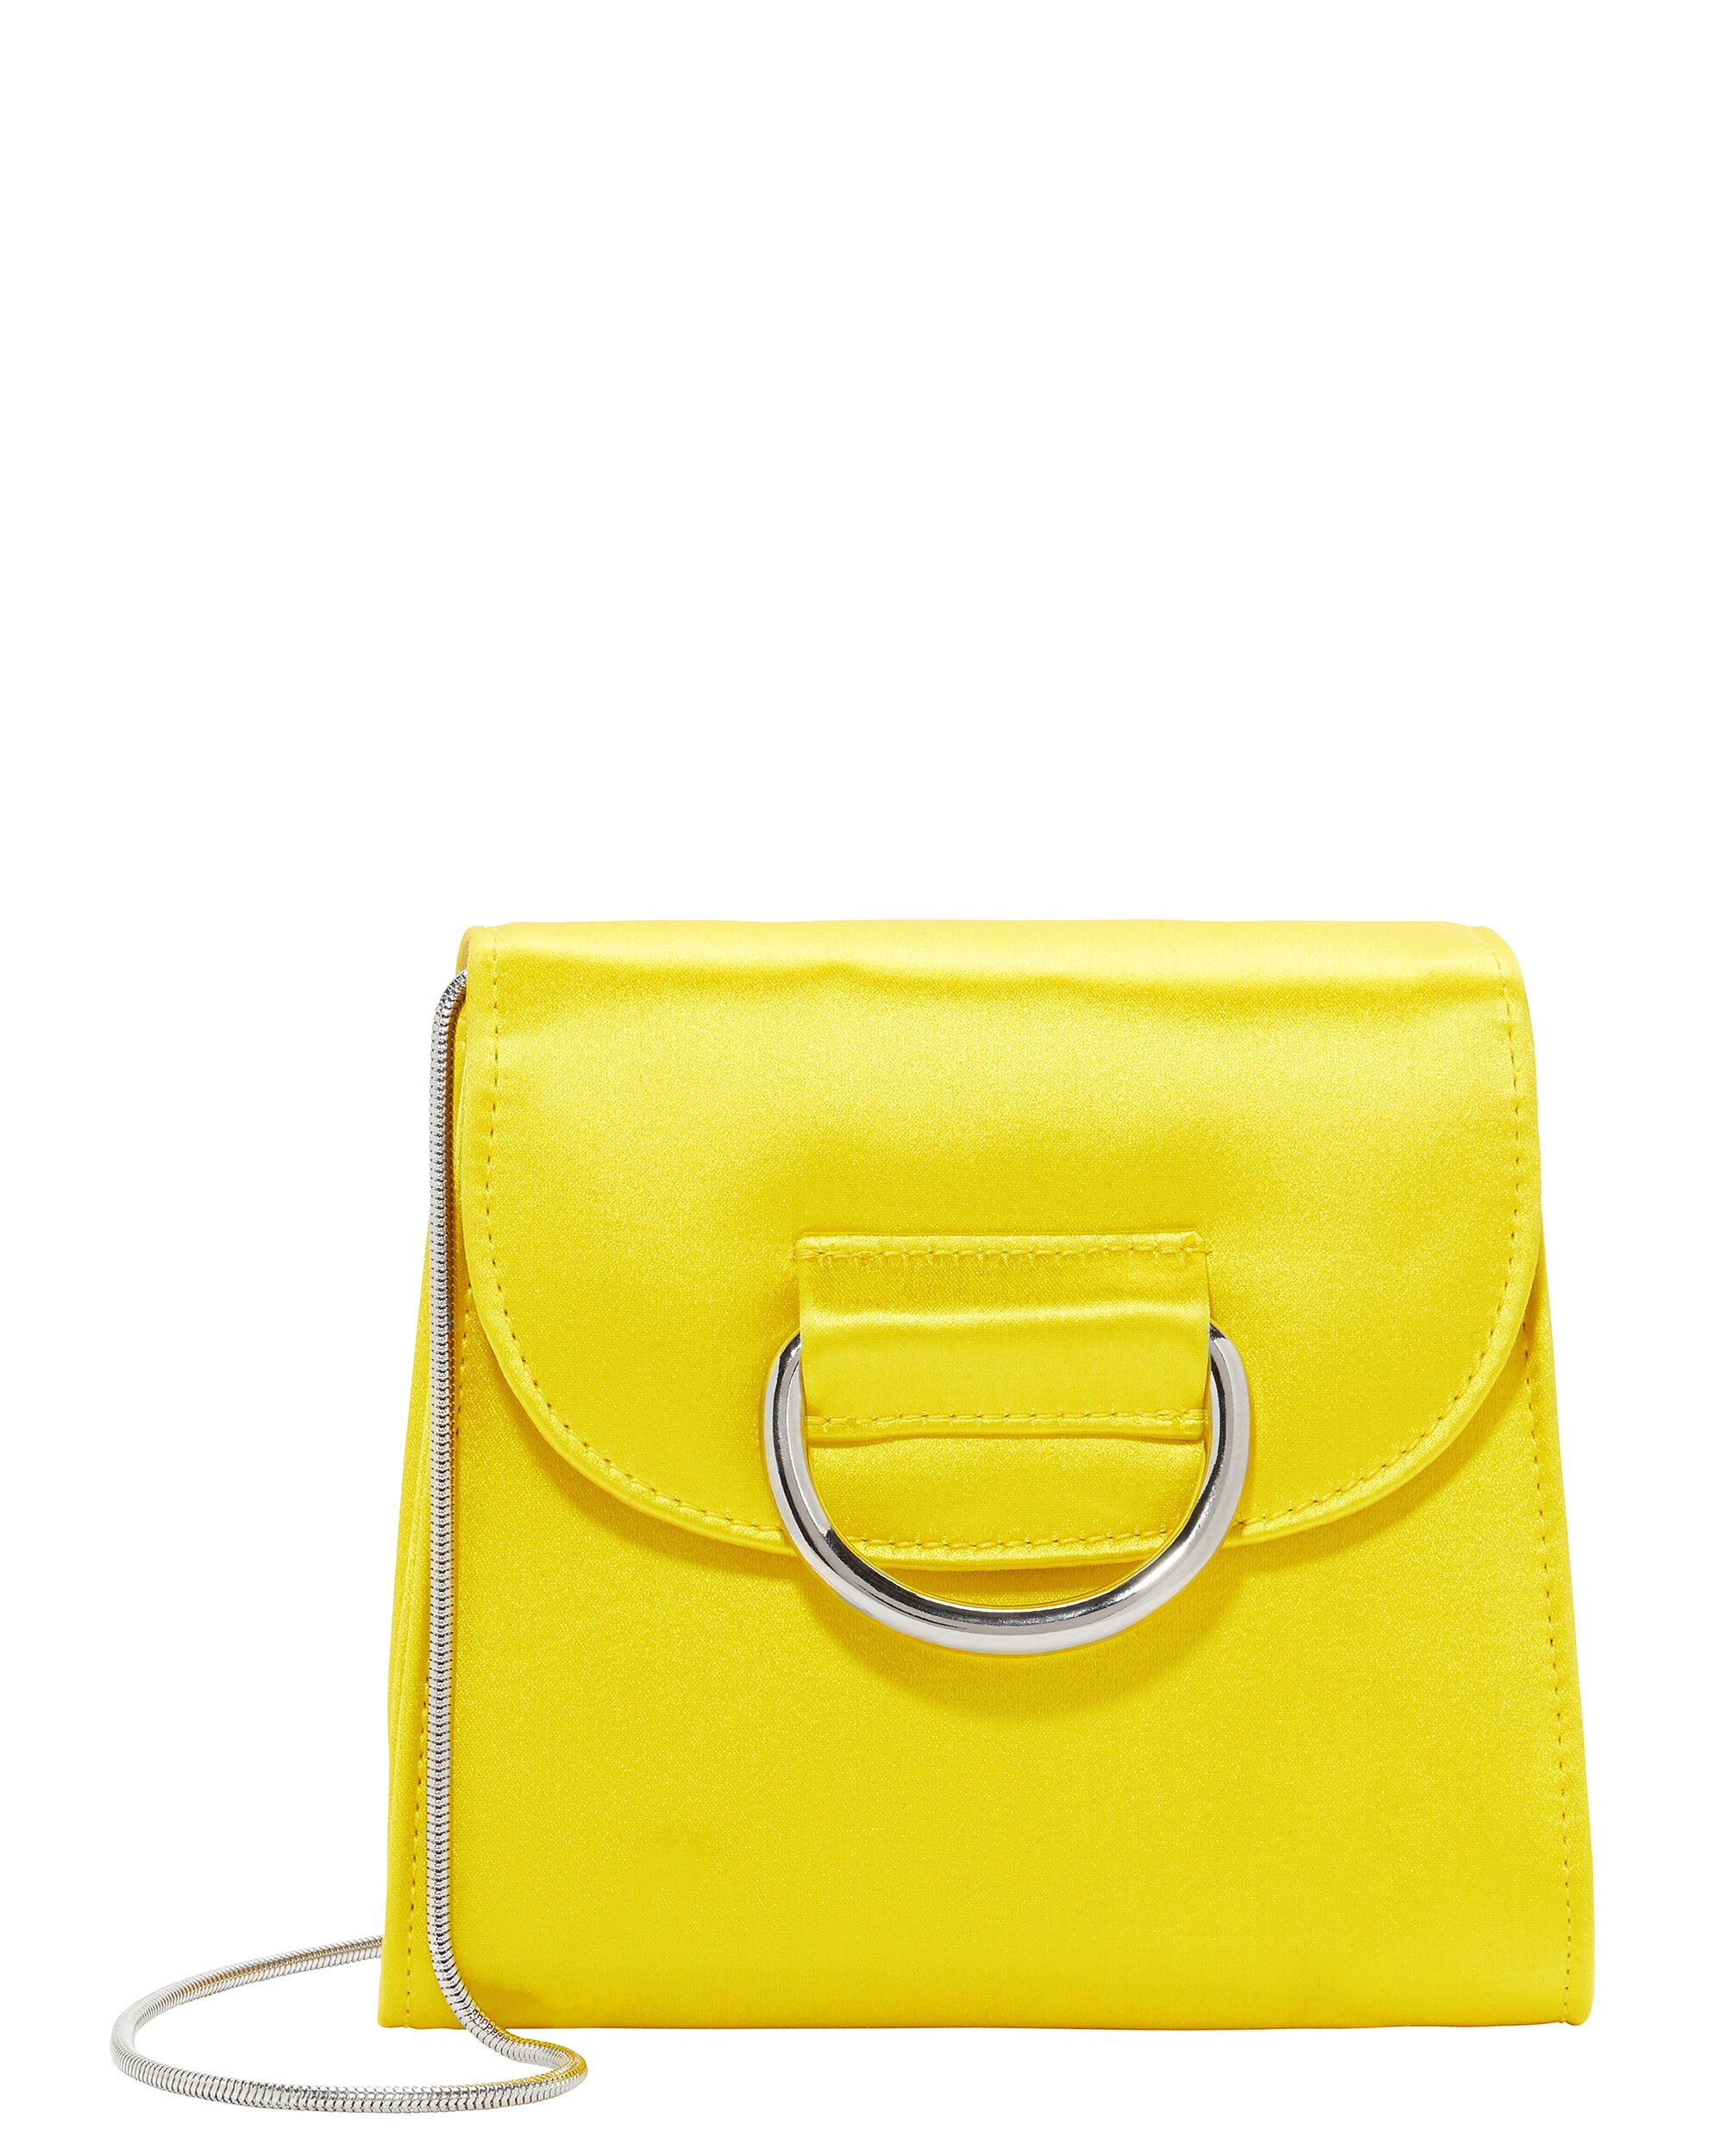 Tiny Box Satin Yellow Bag, YELLOW, hi-res